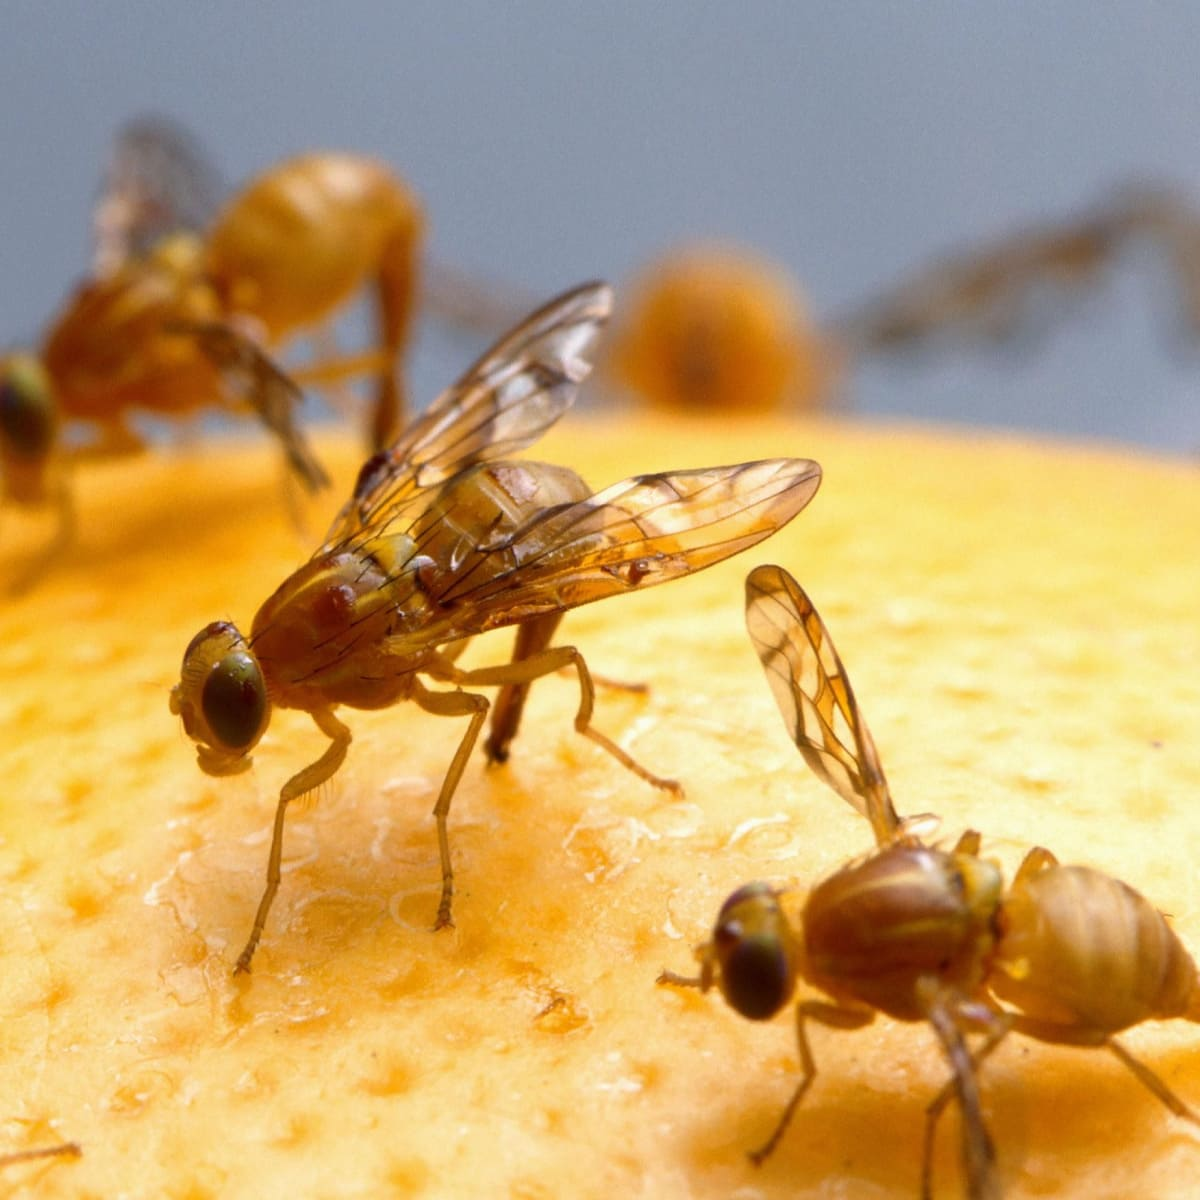 How to Get Rid of Fruit Flies Using Household Items - Reviewed